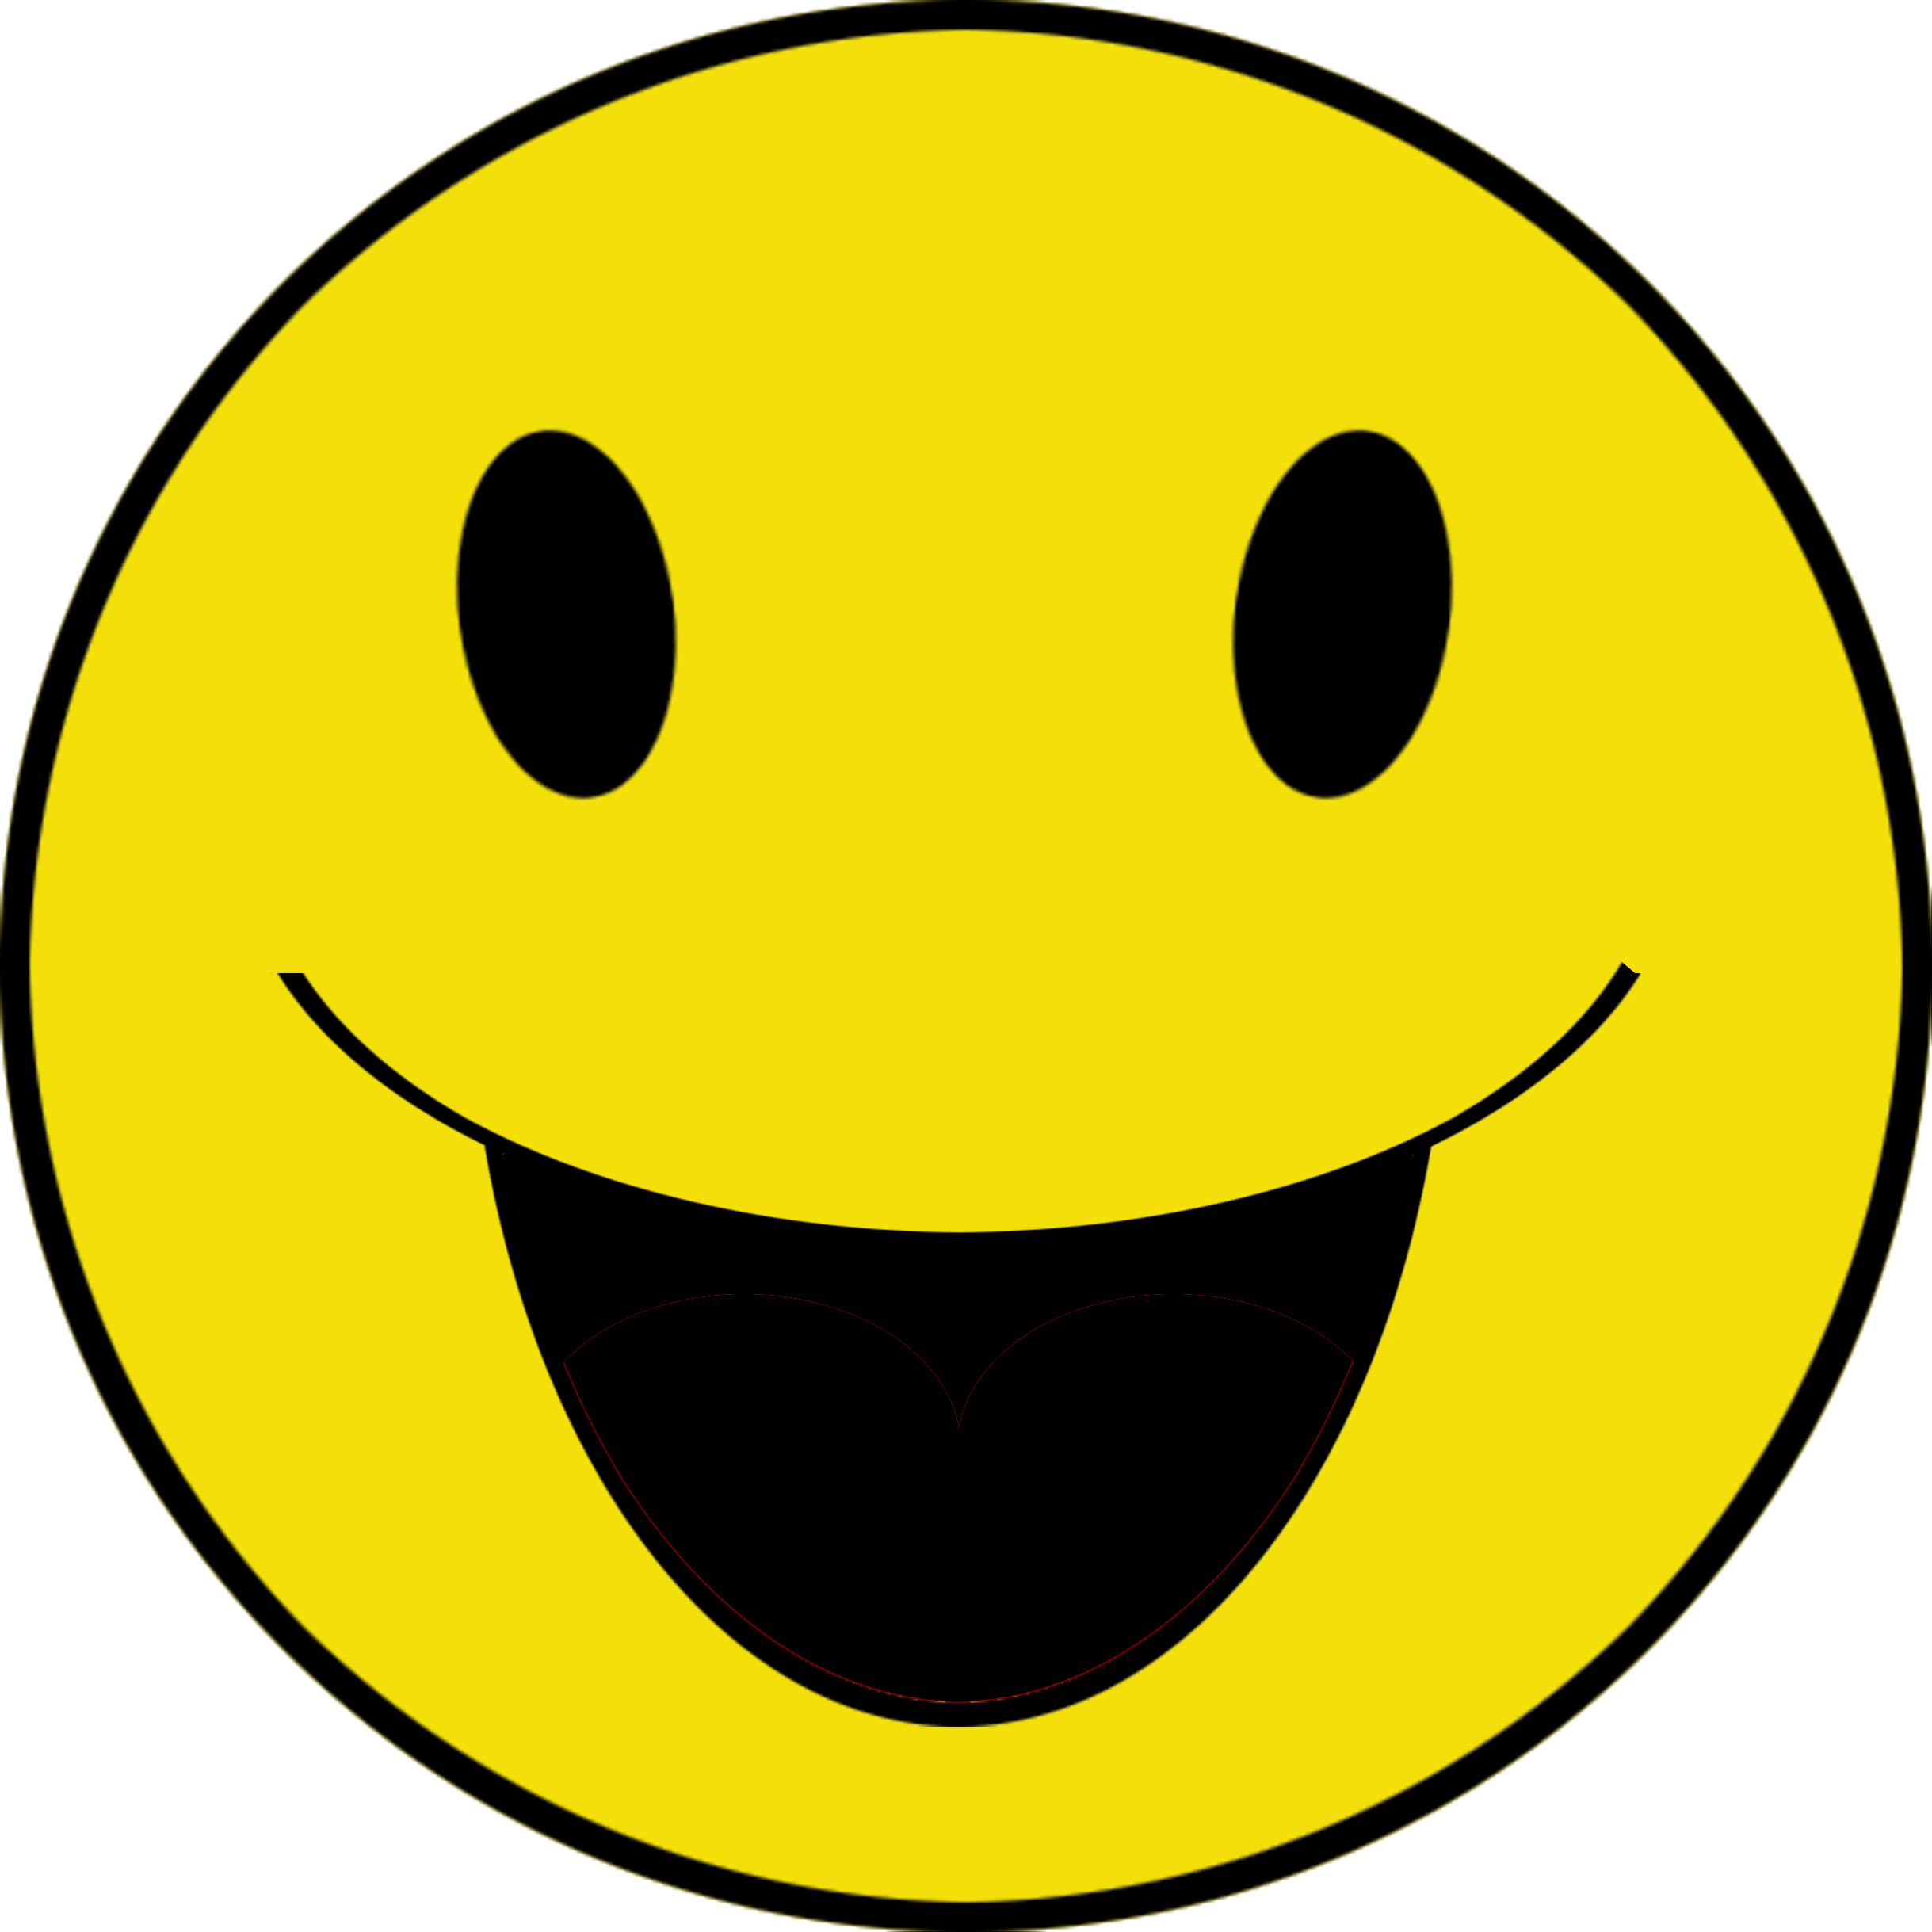 Smiley Looking Happy Png Image Smiley Png Images Png